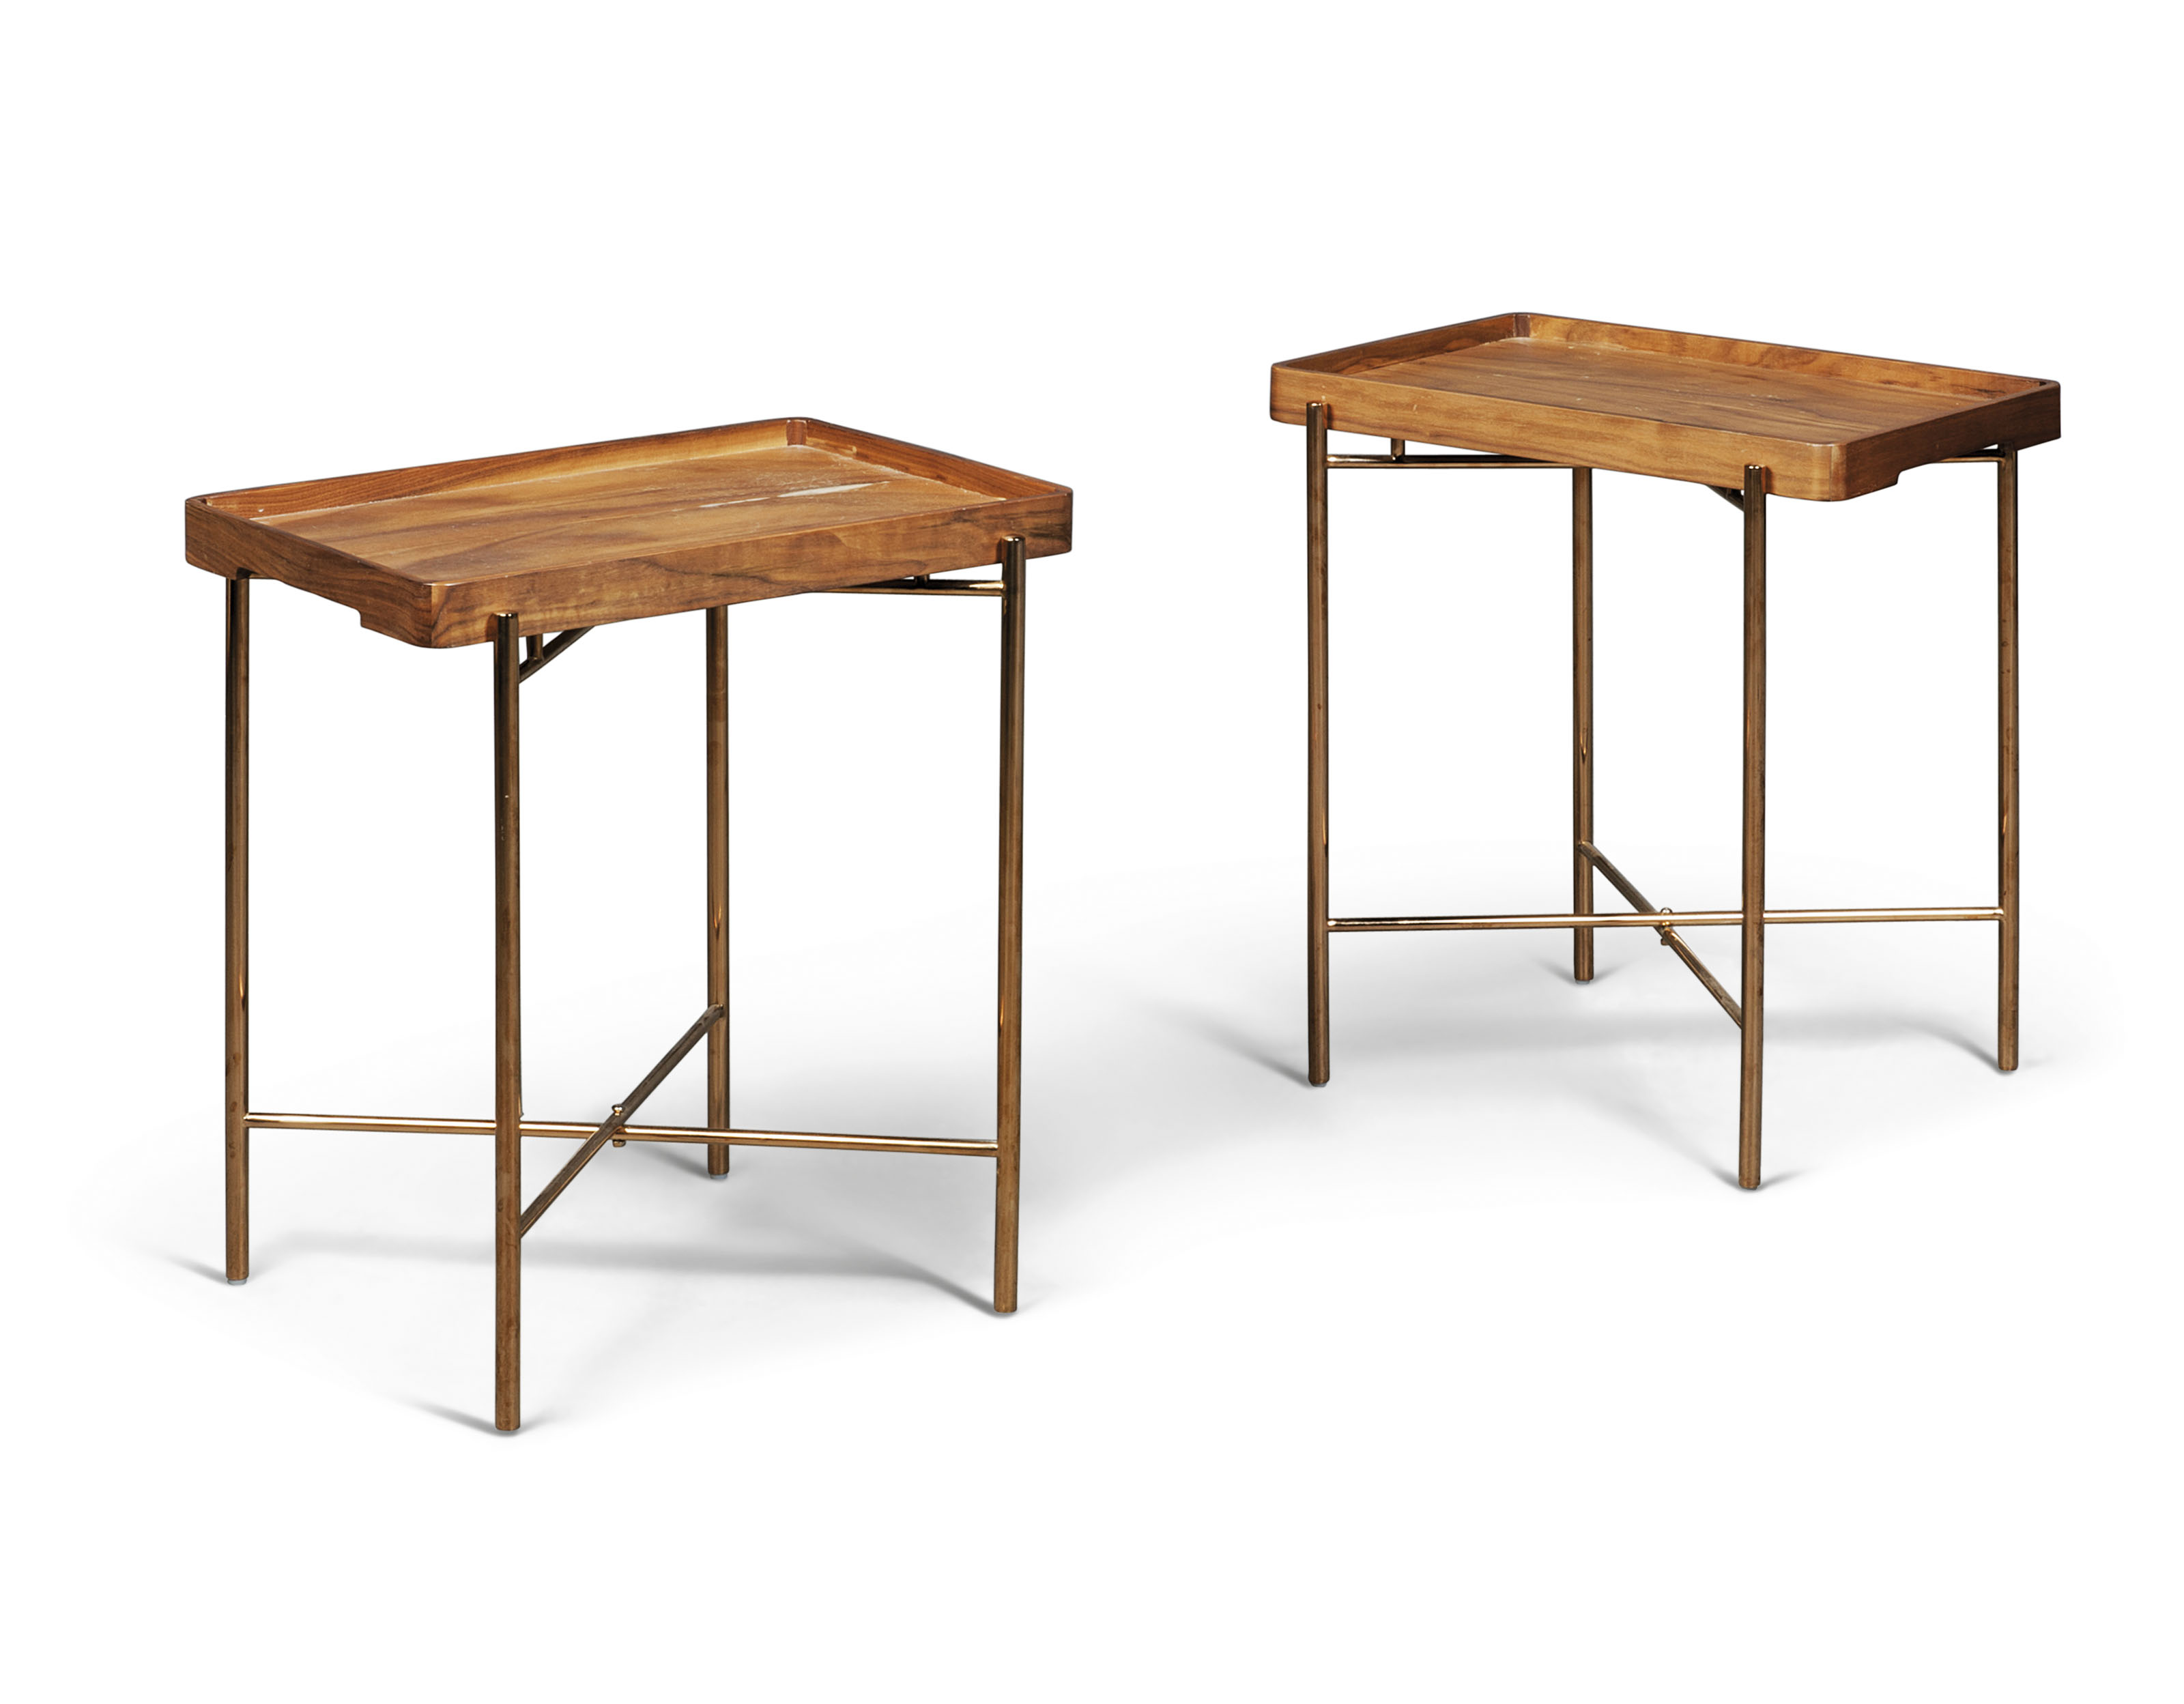 vitra ltr coating table heal tables eames transparent surface s leather gilded with occasional